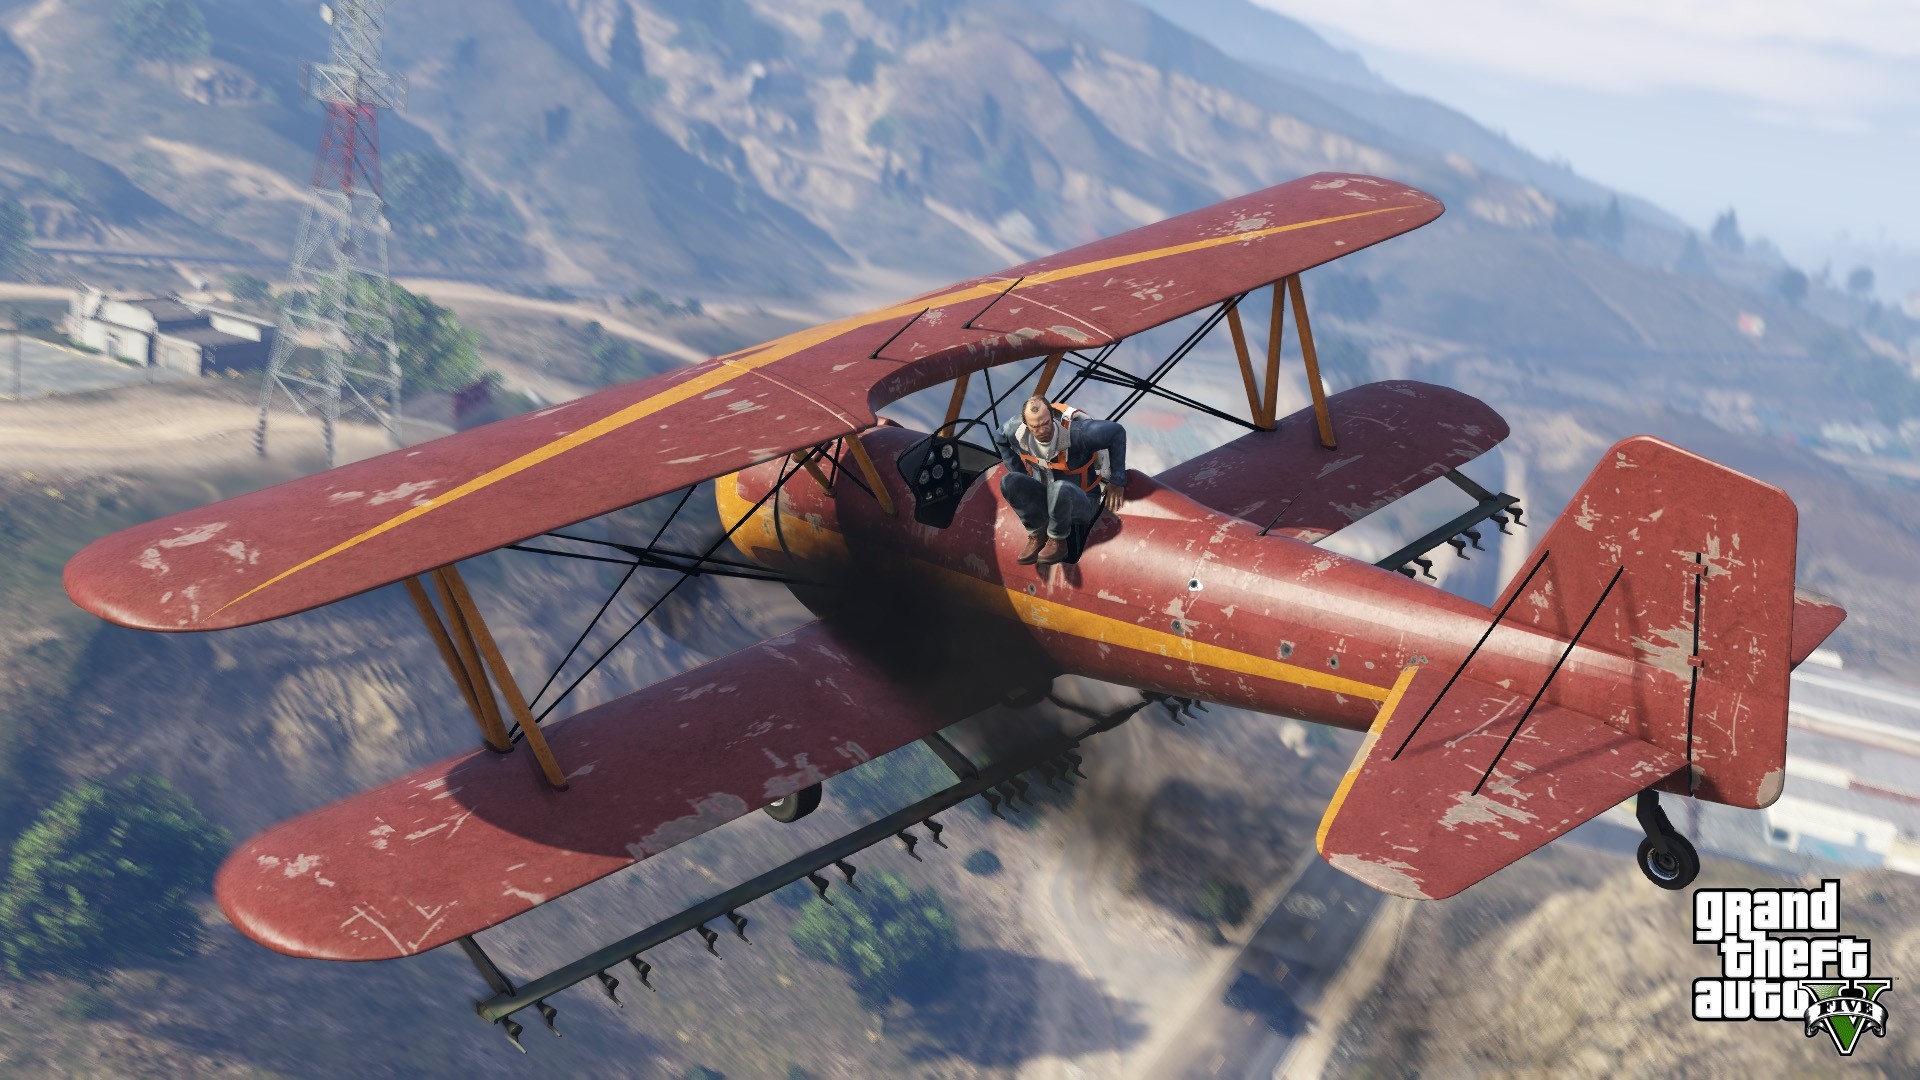 GTA V Coming to Xbox One, PS4 and PC Starting November 18